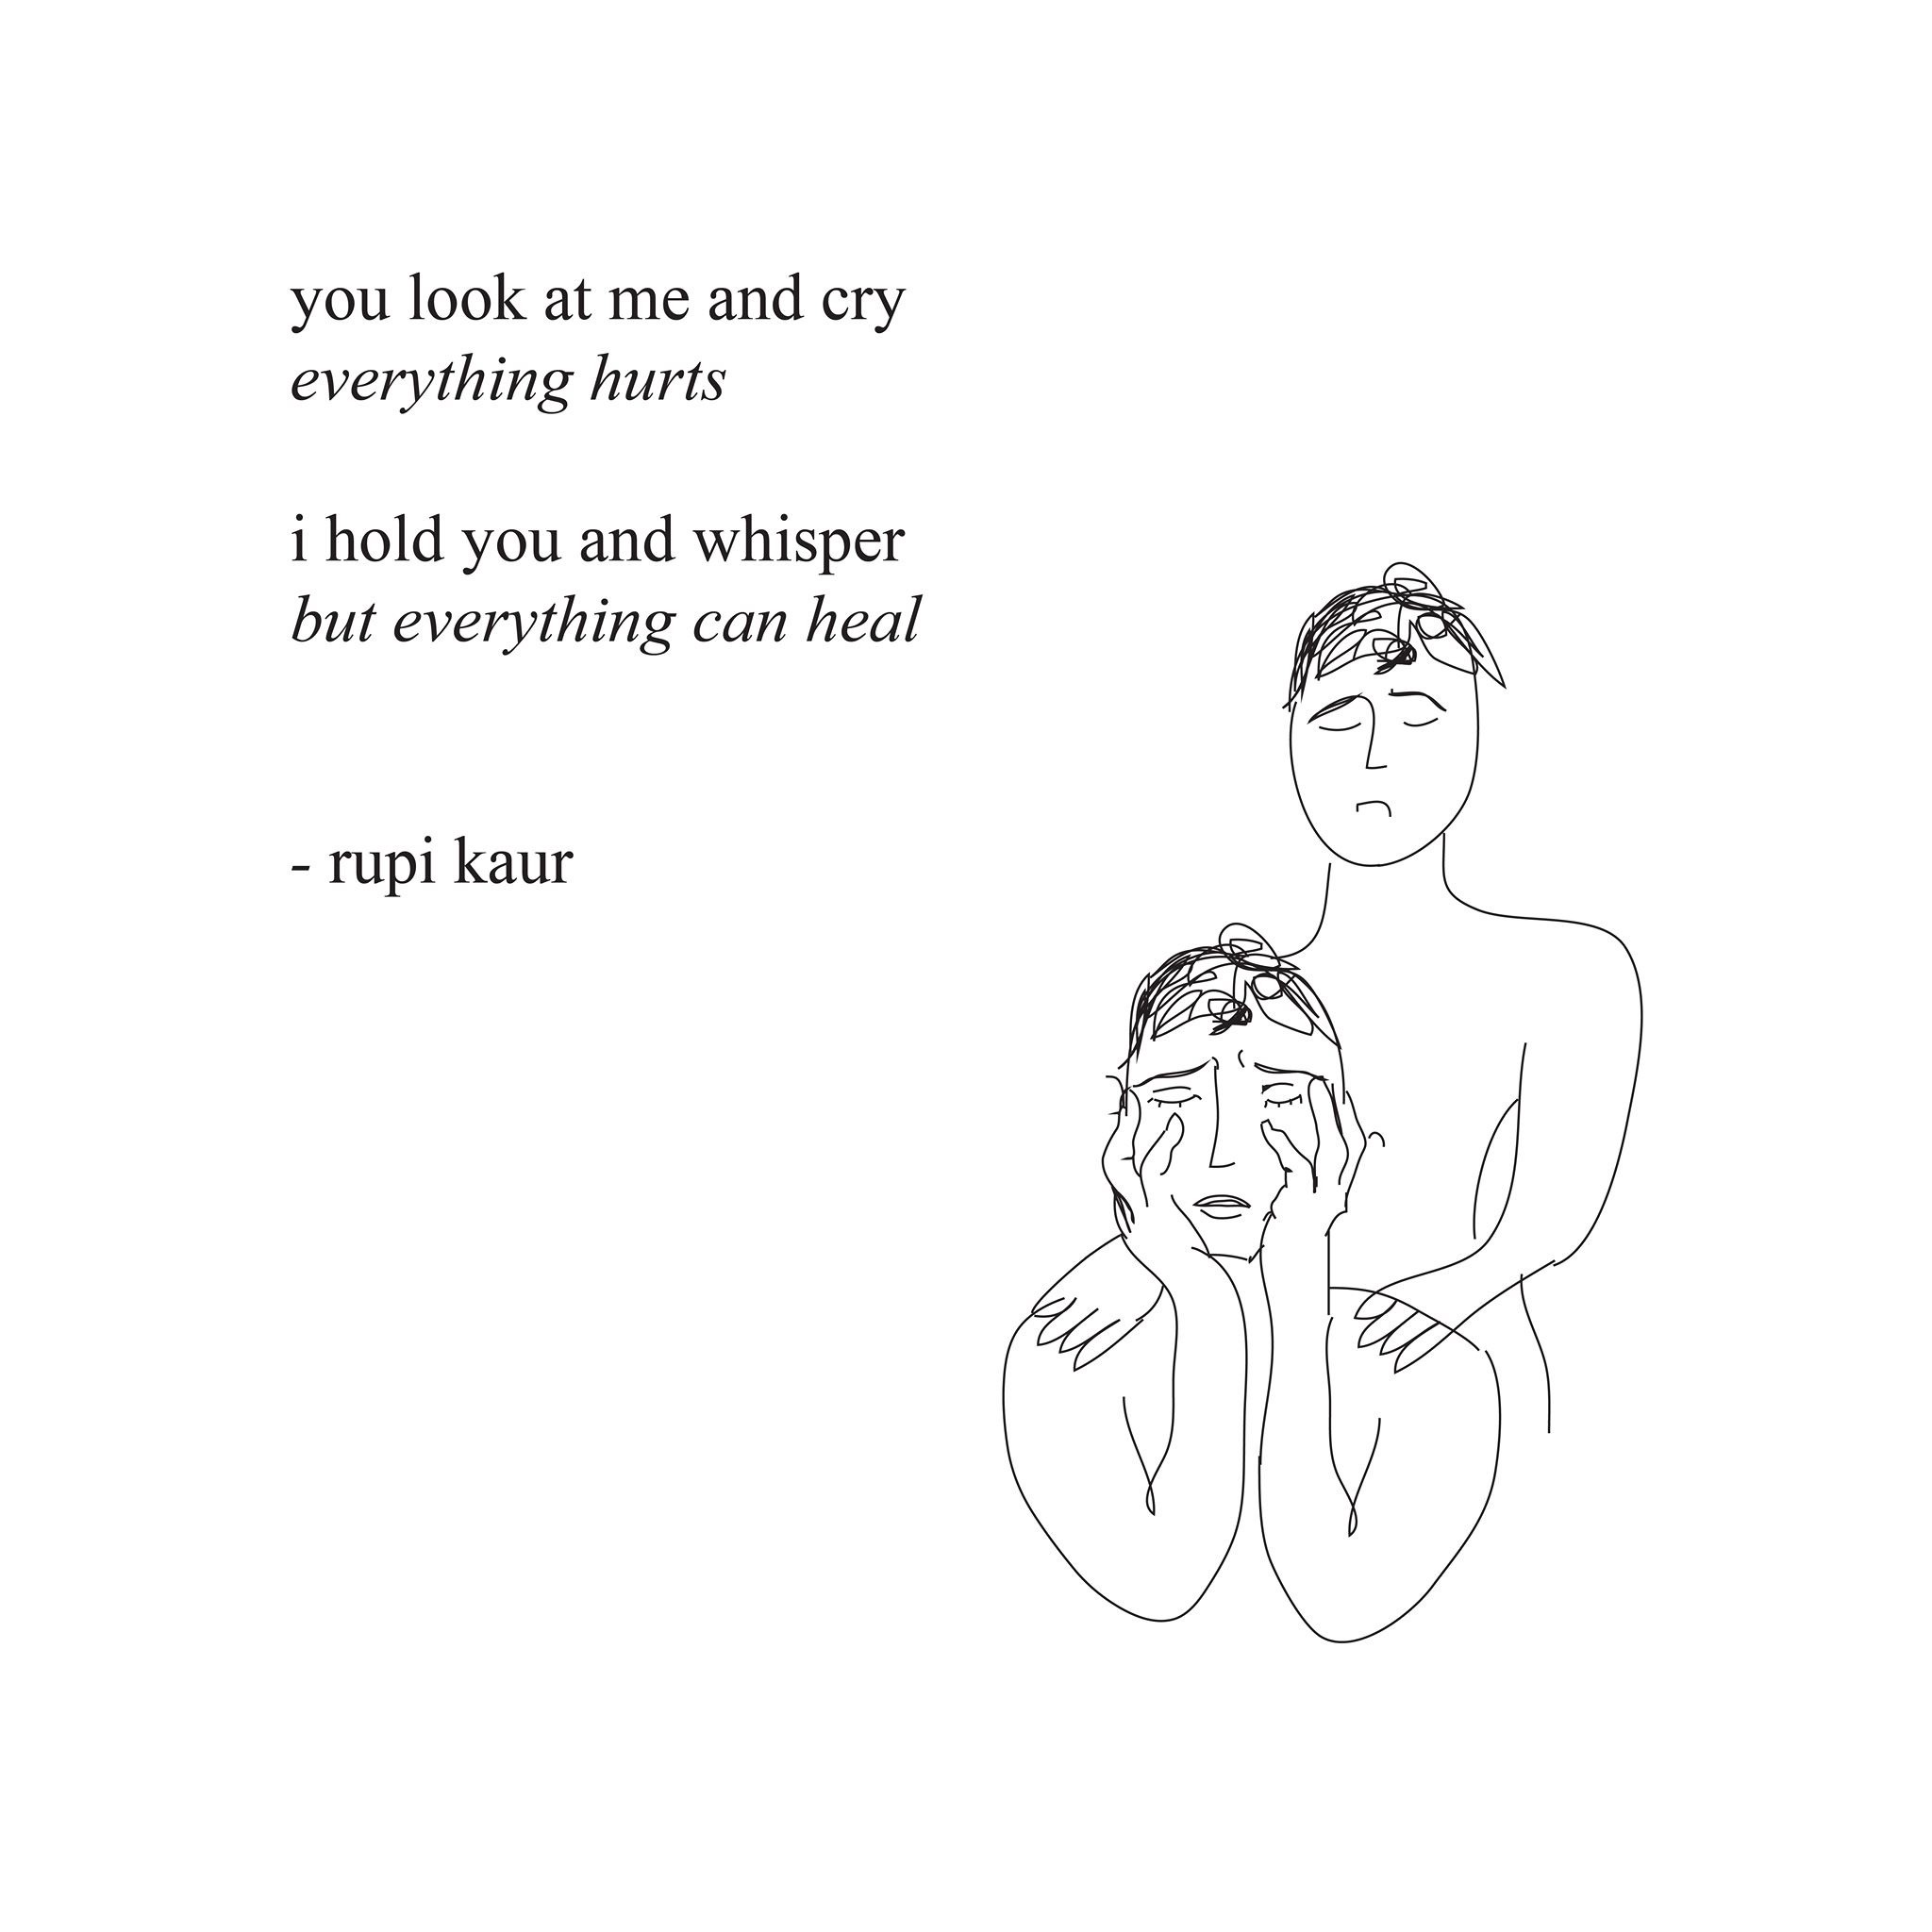 Sorry, Everyone, but Rupi Kaur Is Overrated - Hayden Church